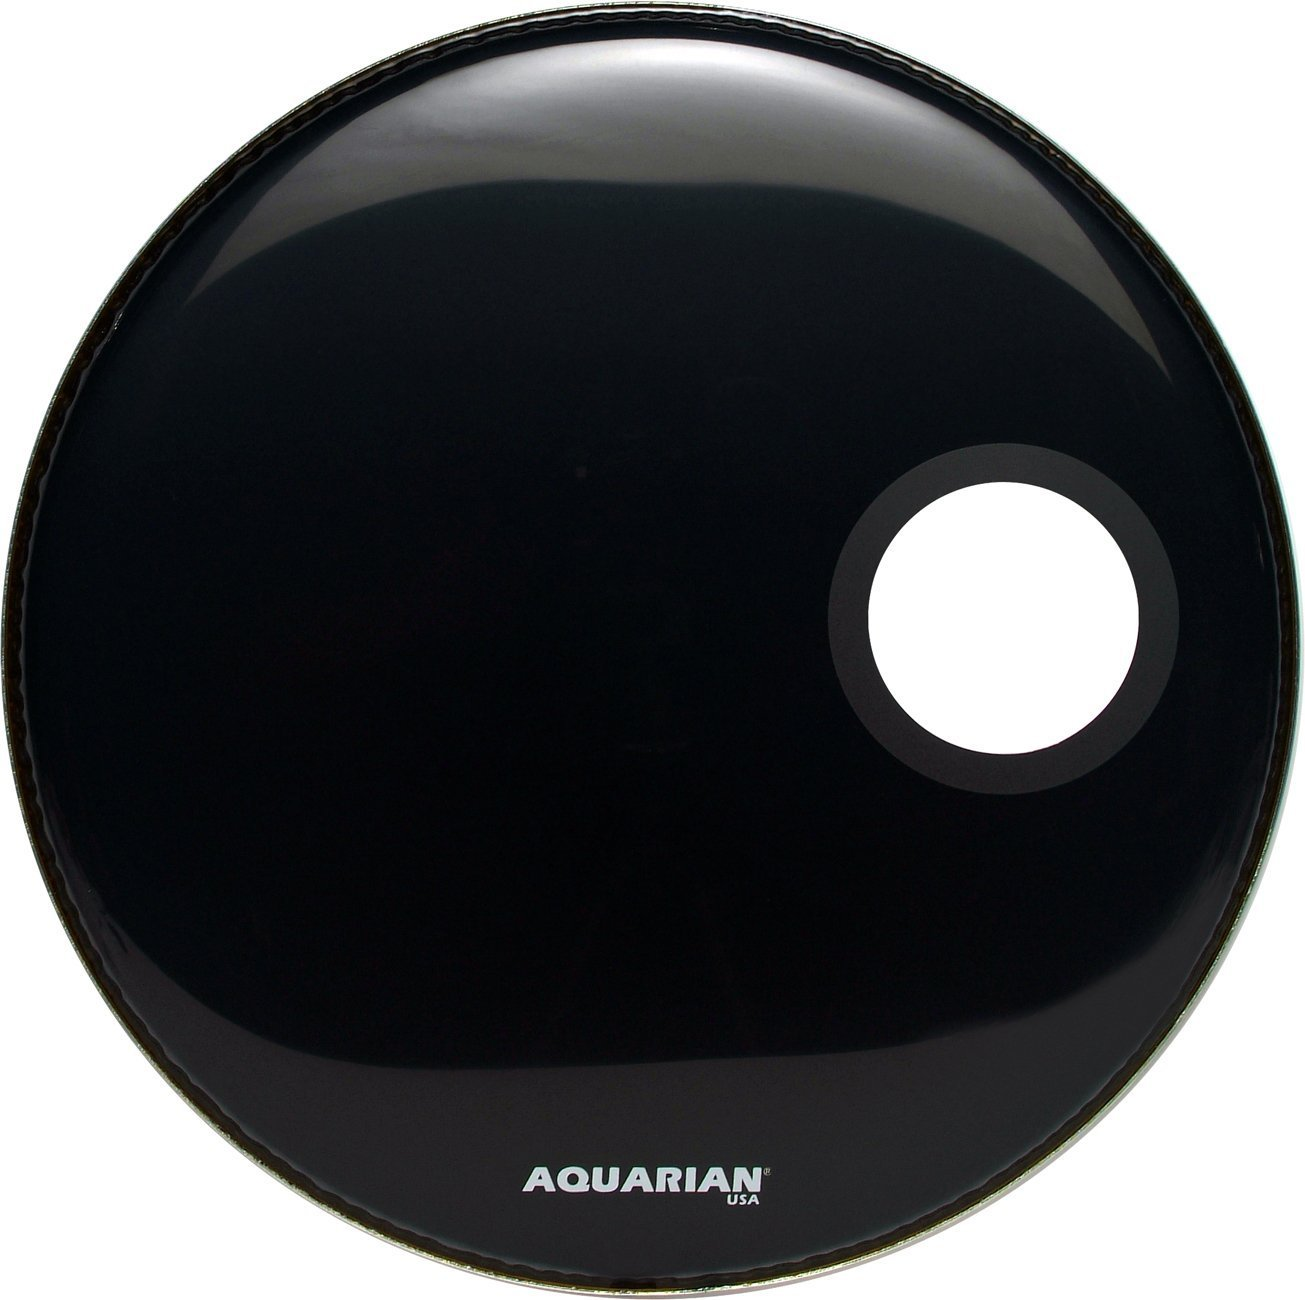 Aquarian Drumheads SMPTCC24BK Offset Ported Bass 24-inch Bass Drum Head, gloss black